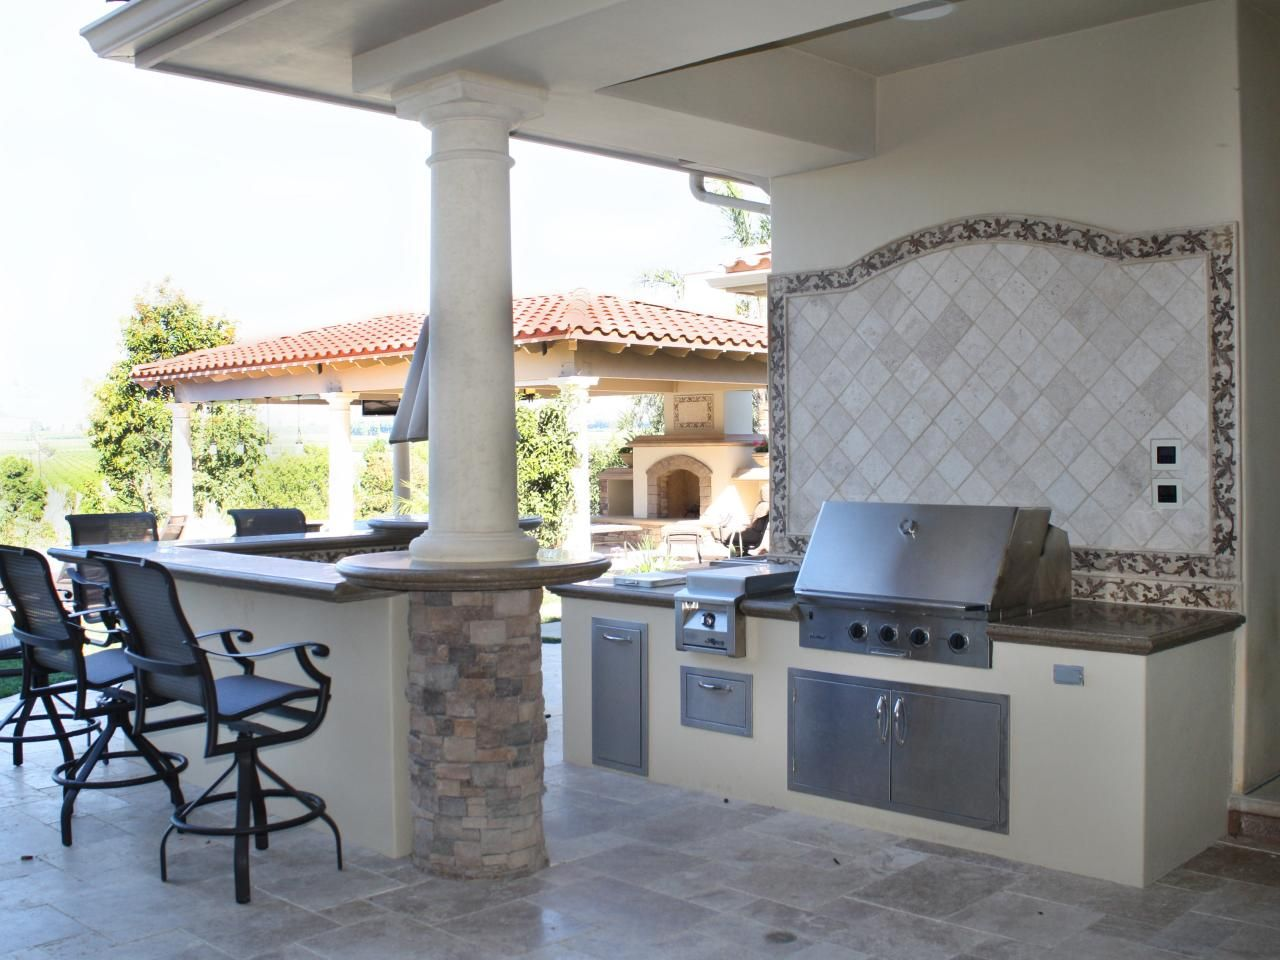 Outdoor Kitchen Ideas On A Budget Pictures Tips Ideas Outdoor Kitchen Countertops Outdoor Kitchen Decor Outdoor Kitchen